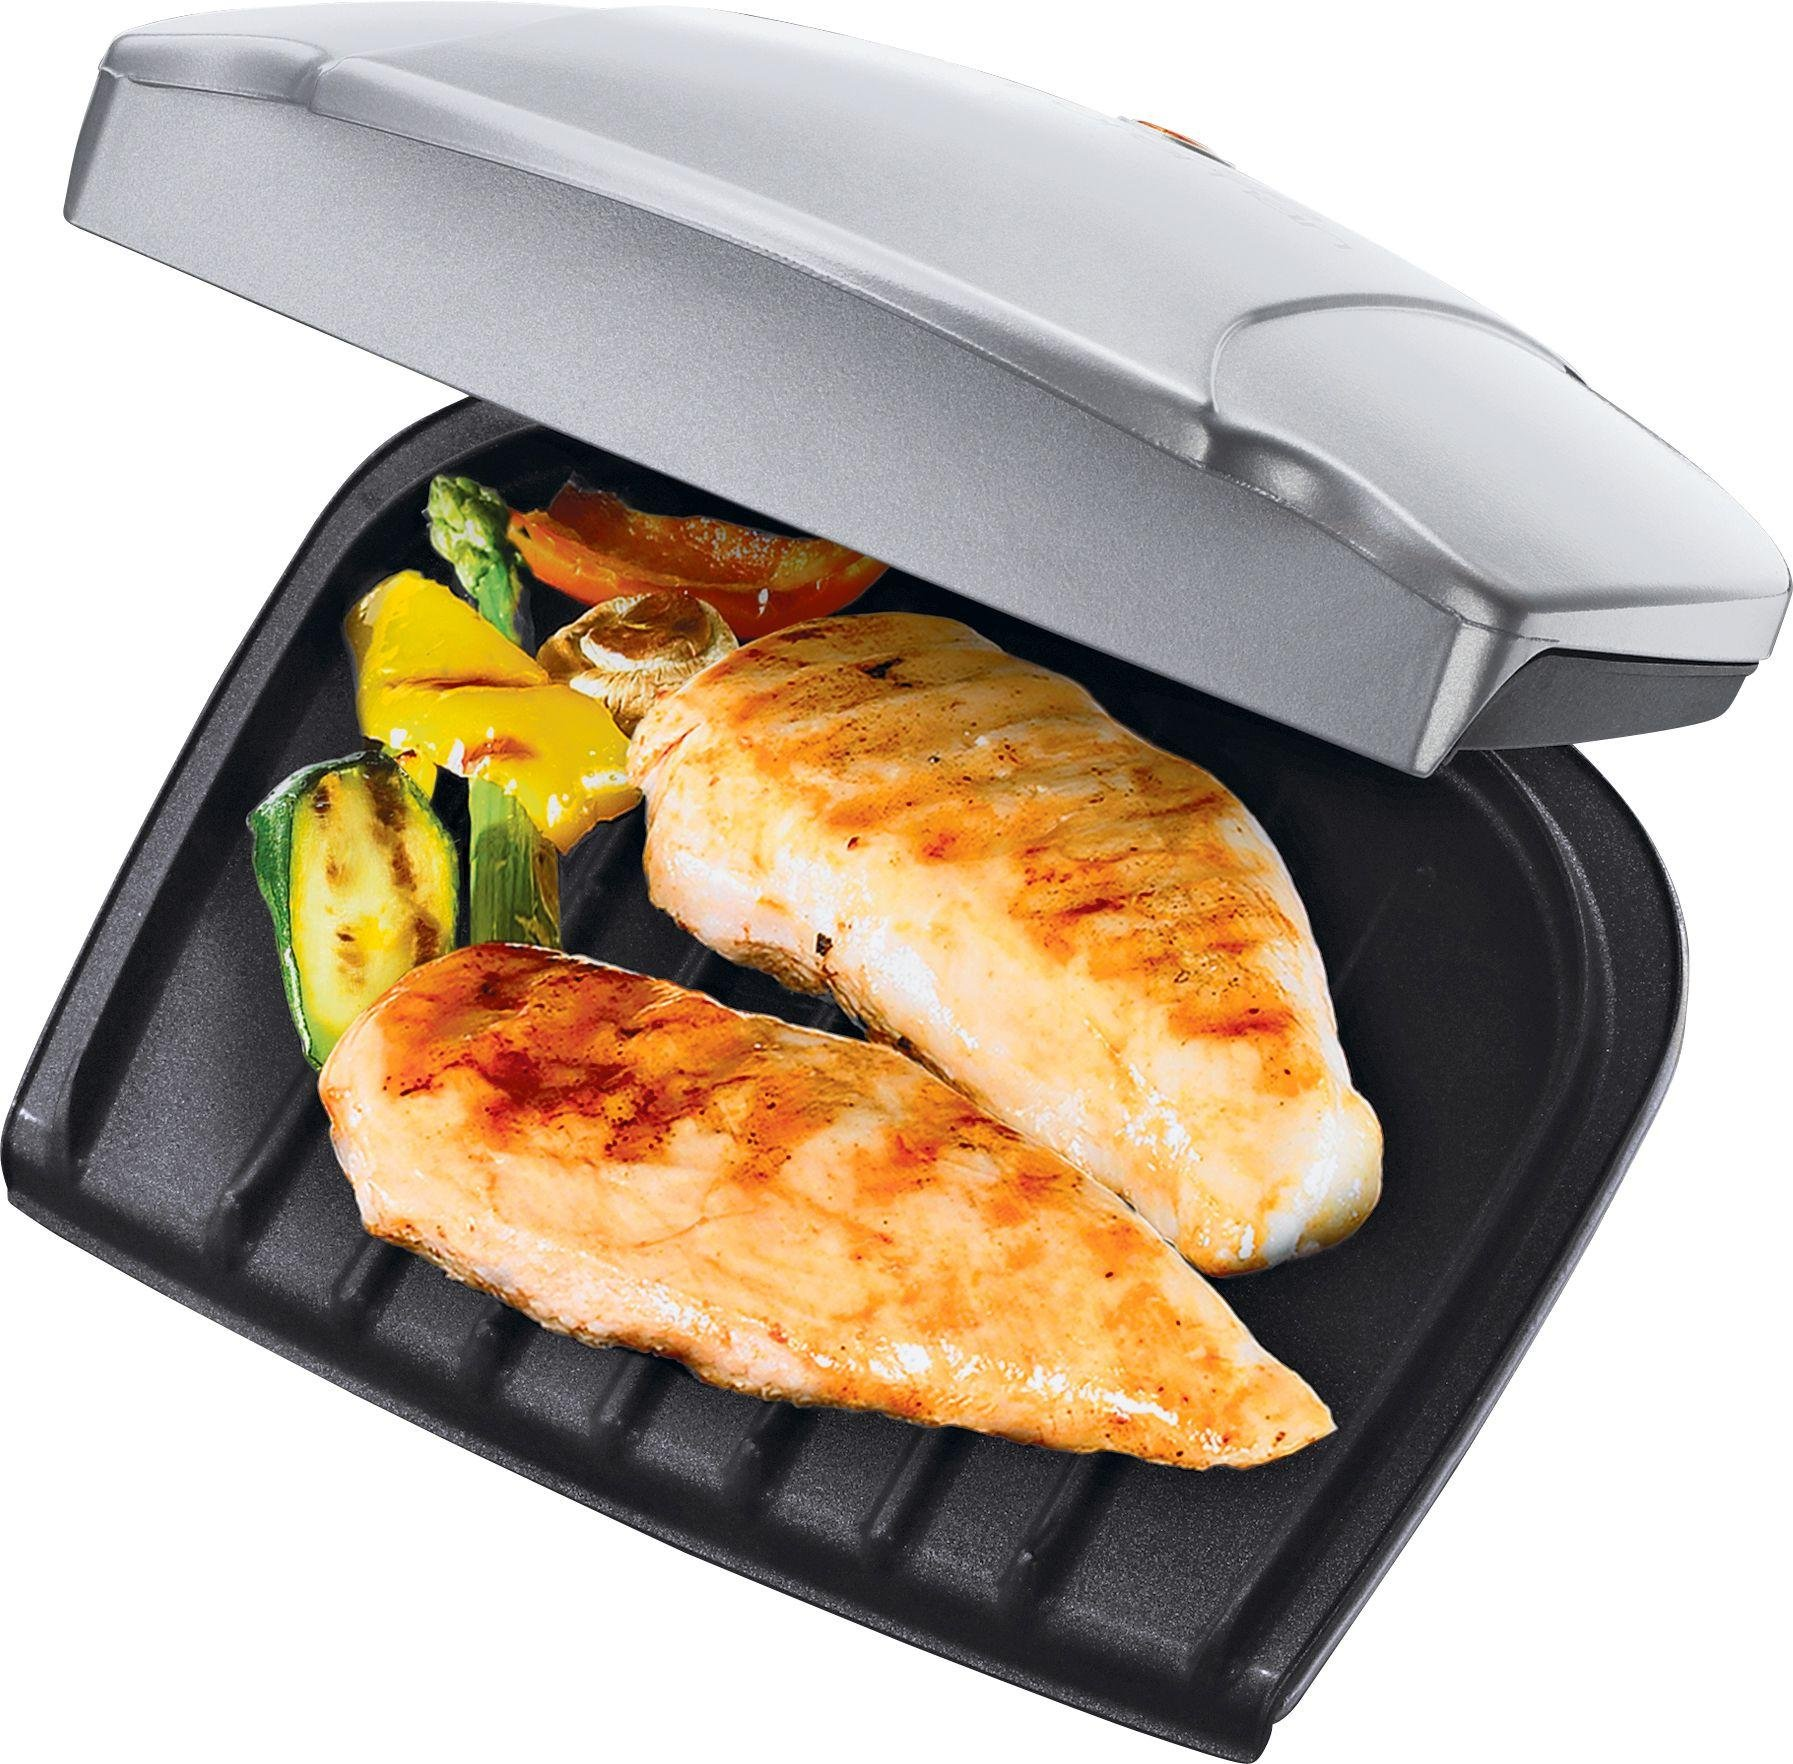 Image of George Foreman - 17894 2 Portion Health Grill